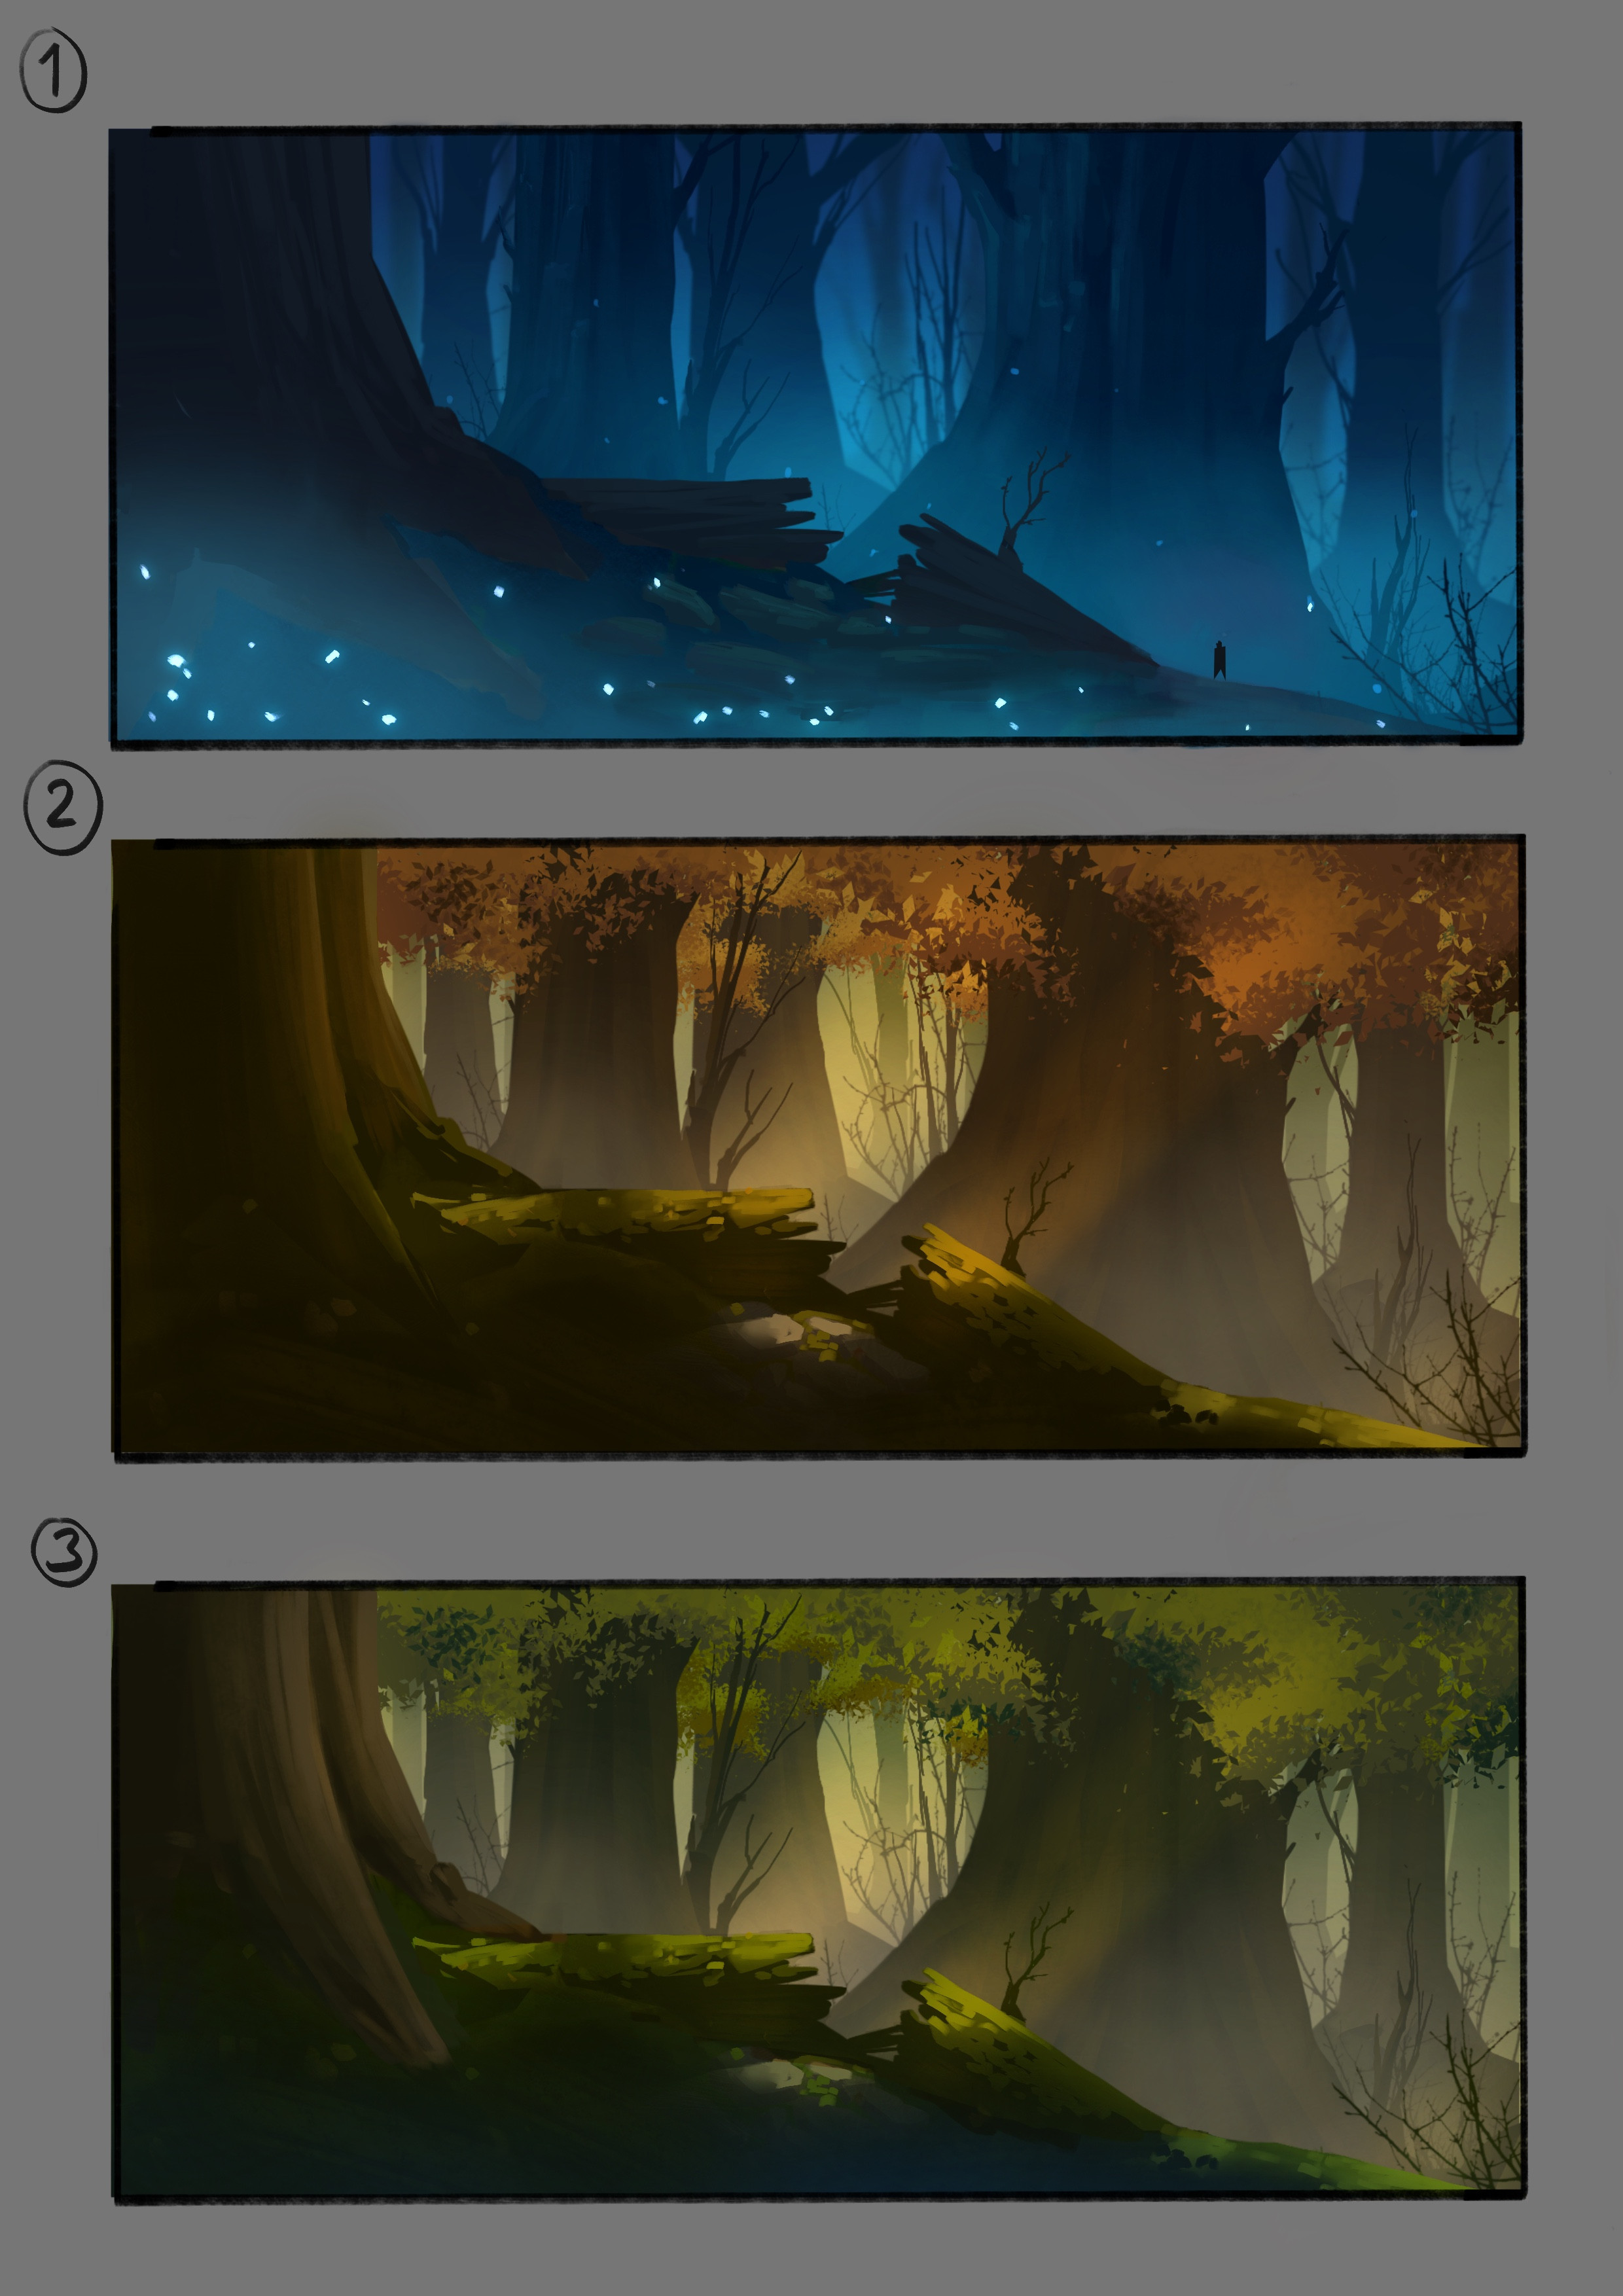 Color compositions for the forest level